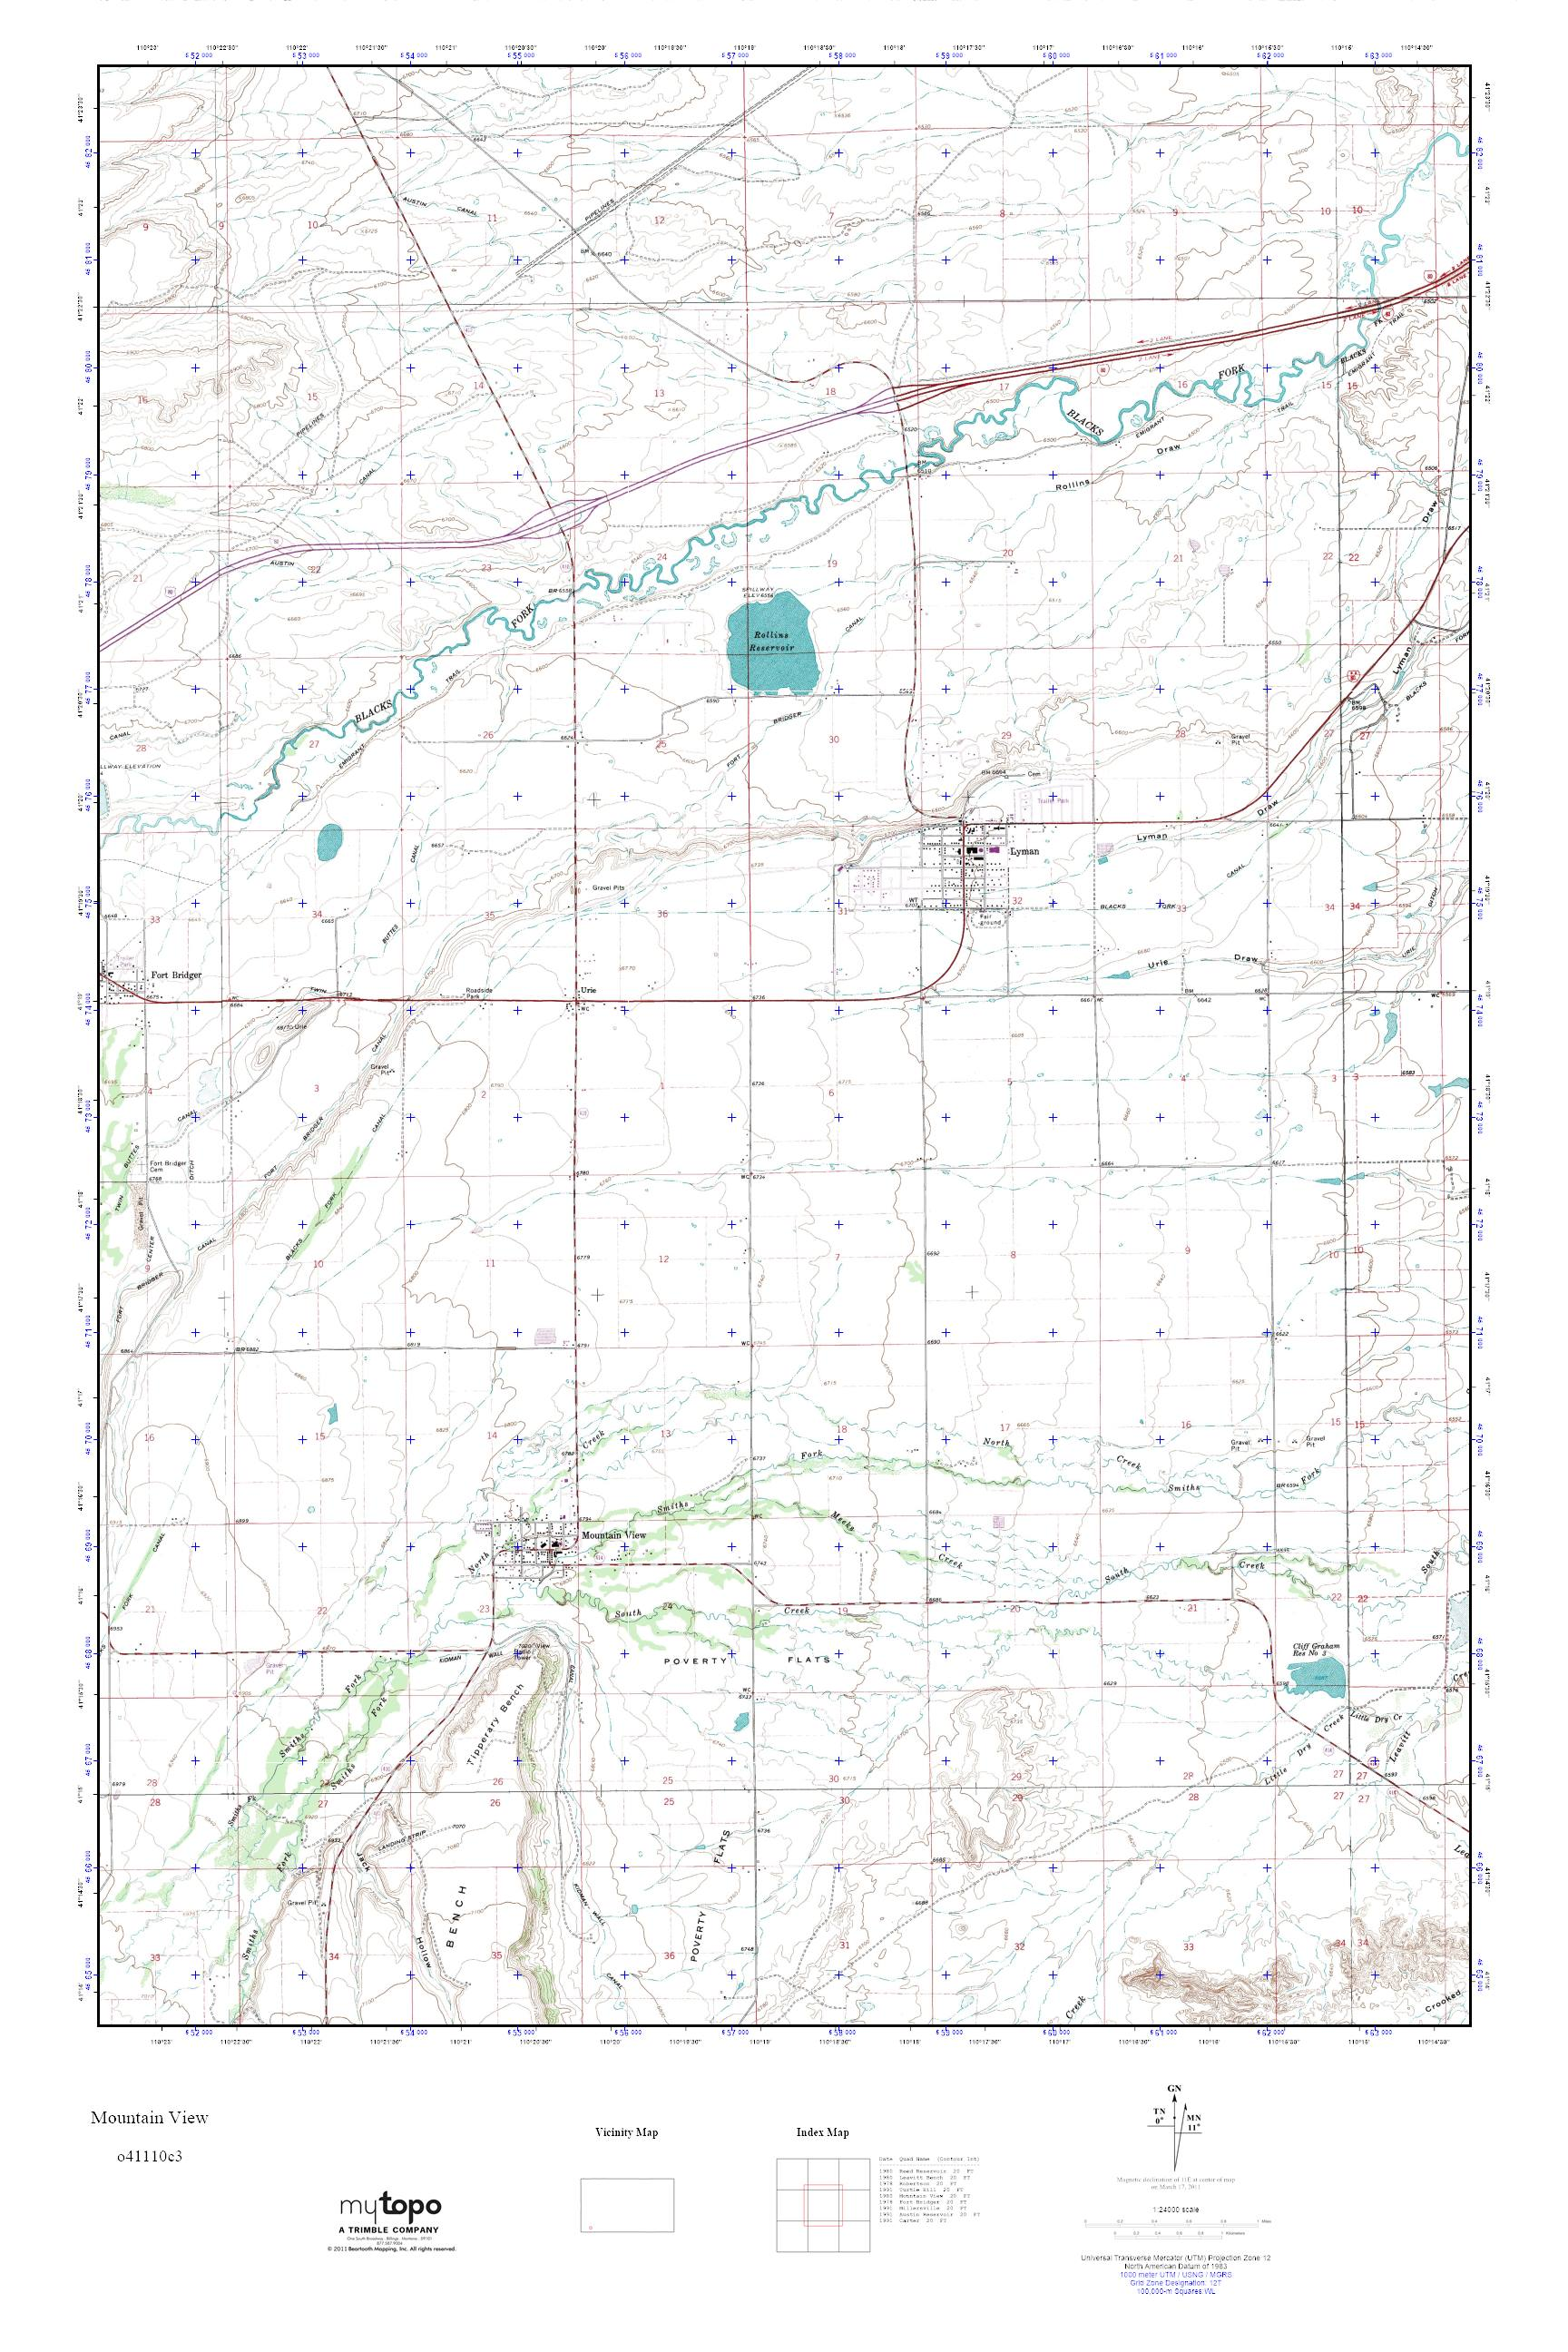 Mountain View Wyoming Map.Mytopo Mountain View Wyoming Usgs Quad Topo Map